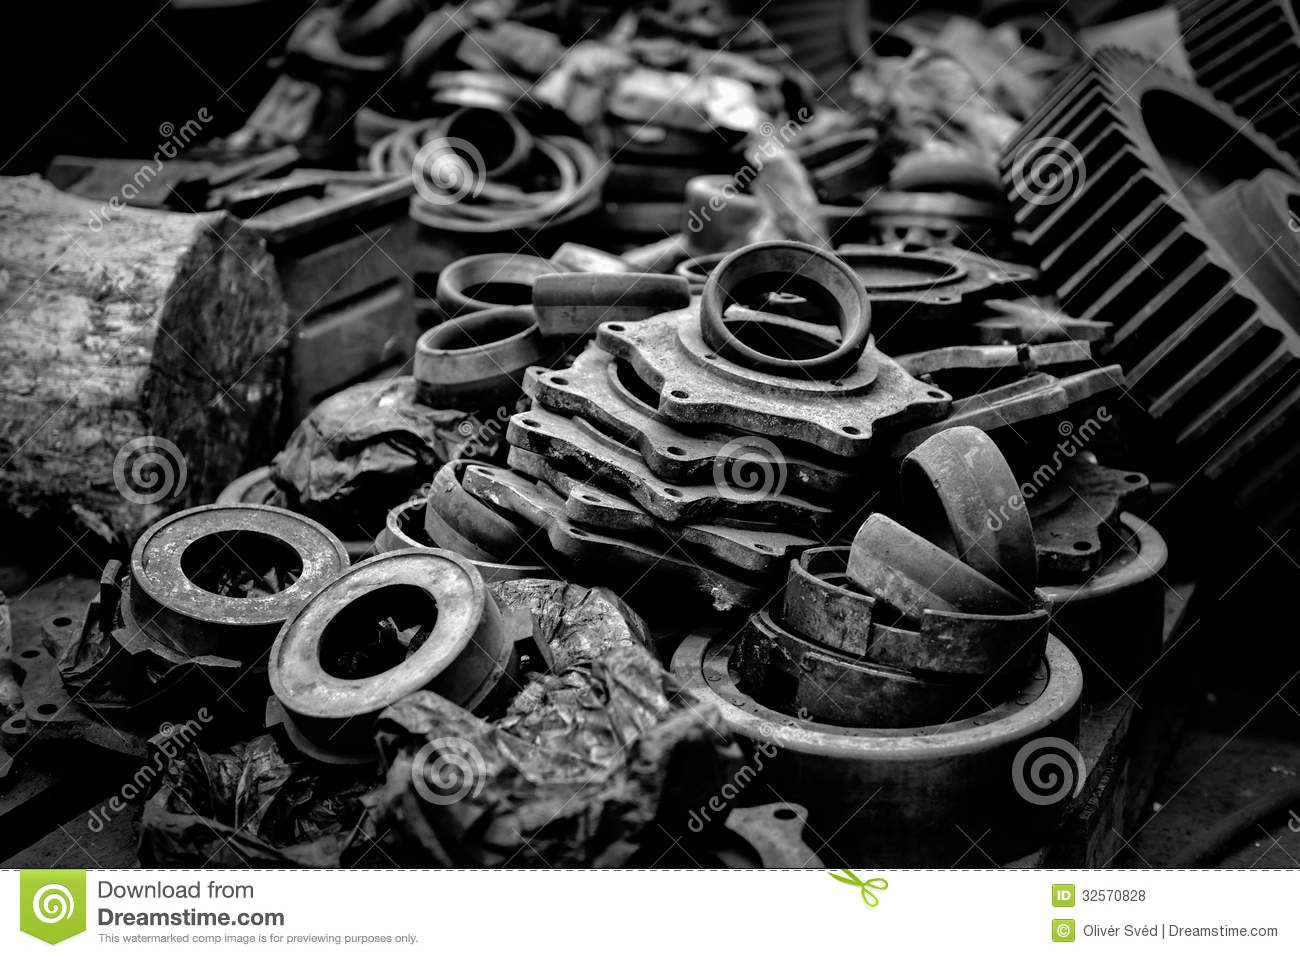 Pic Of Machinery Components : Rusty industrial machine parts stock photo image of